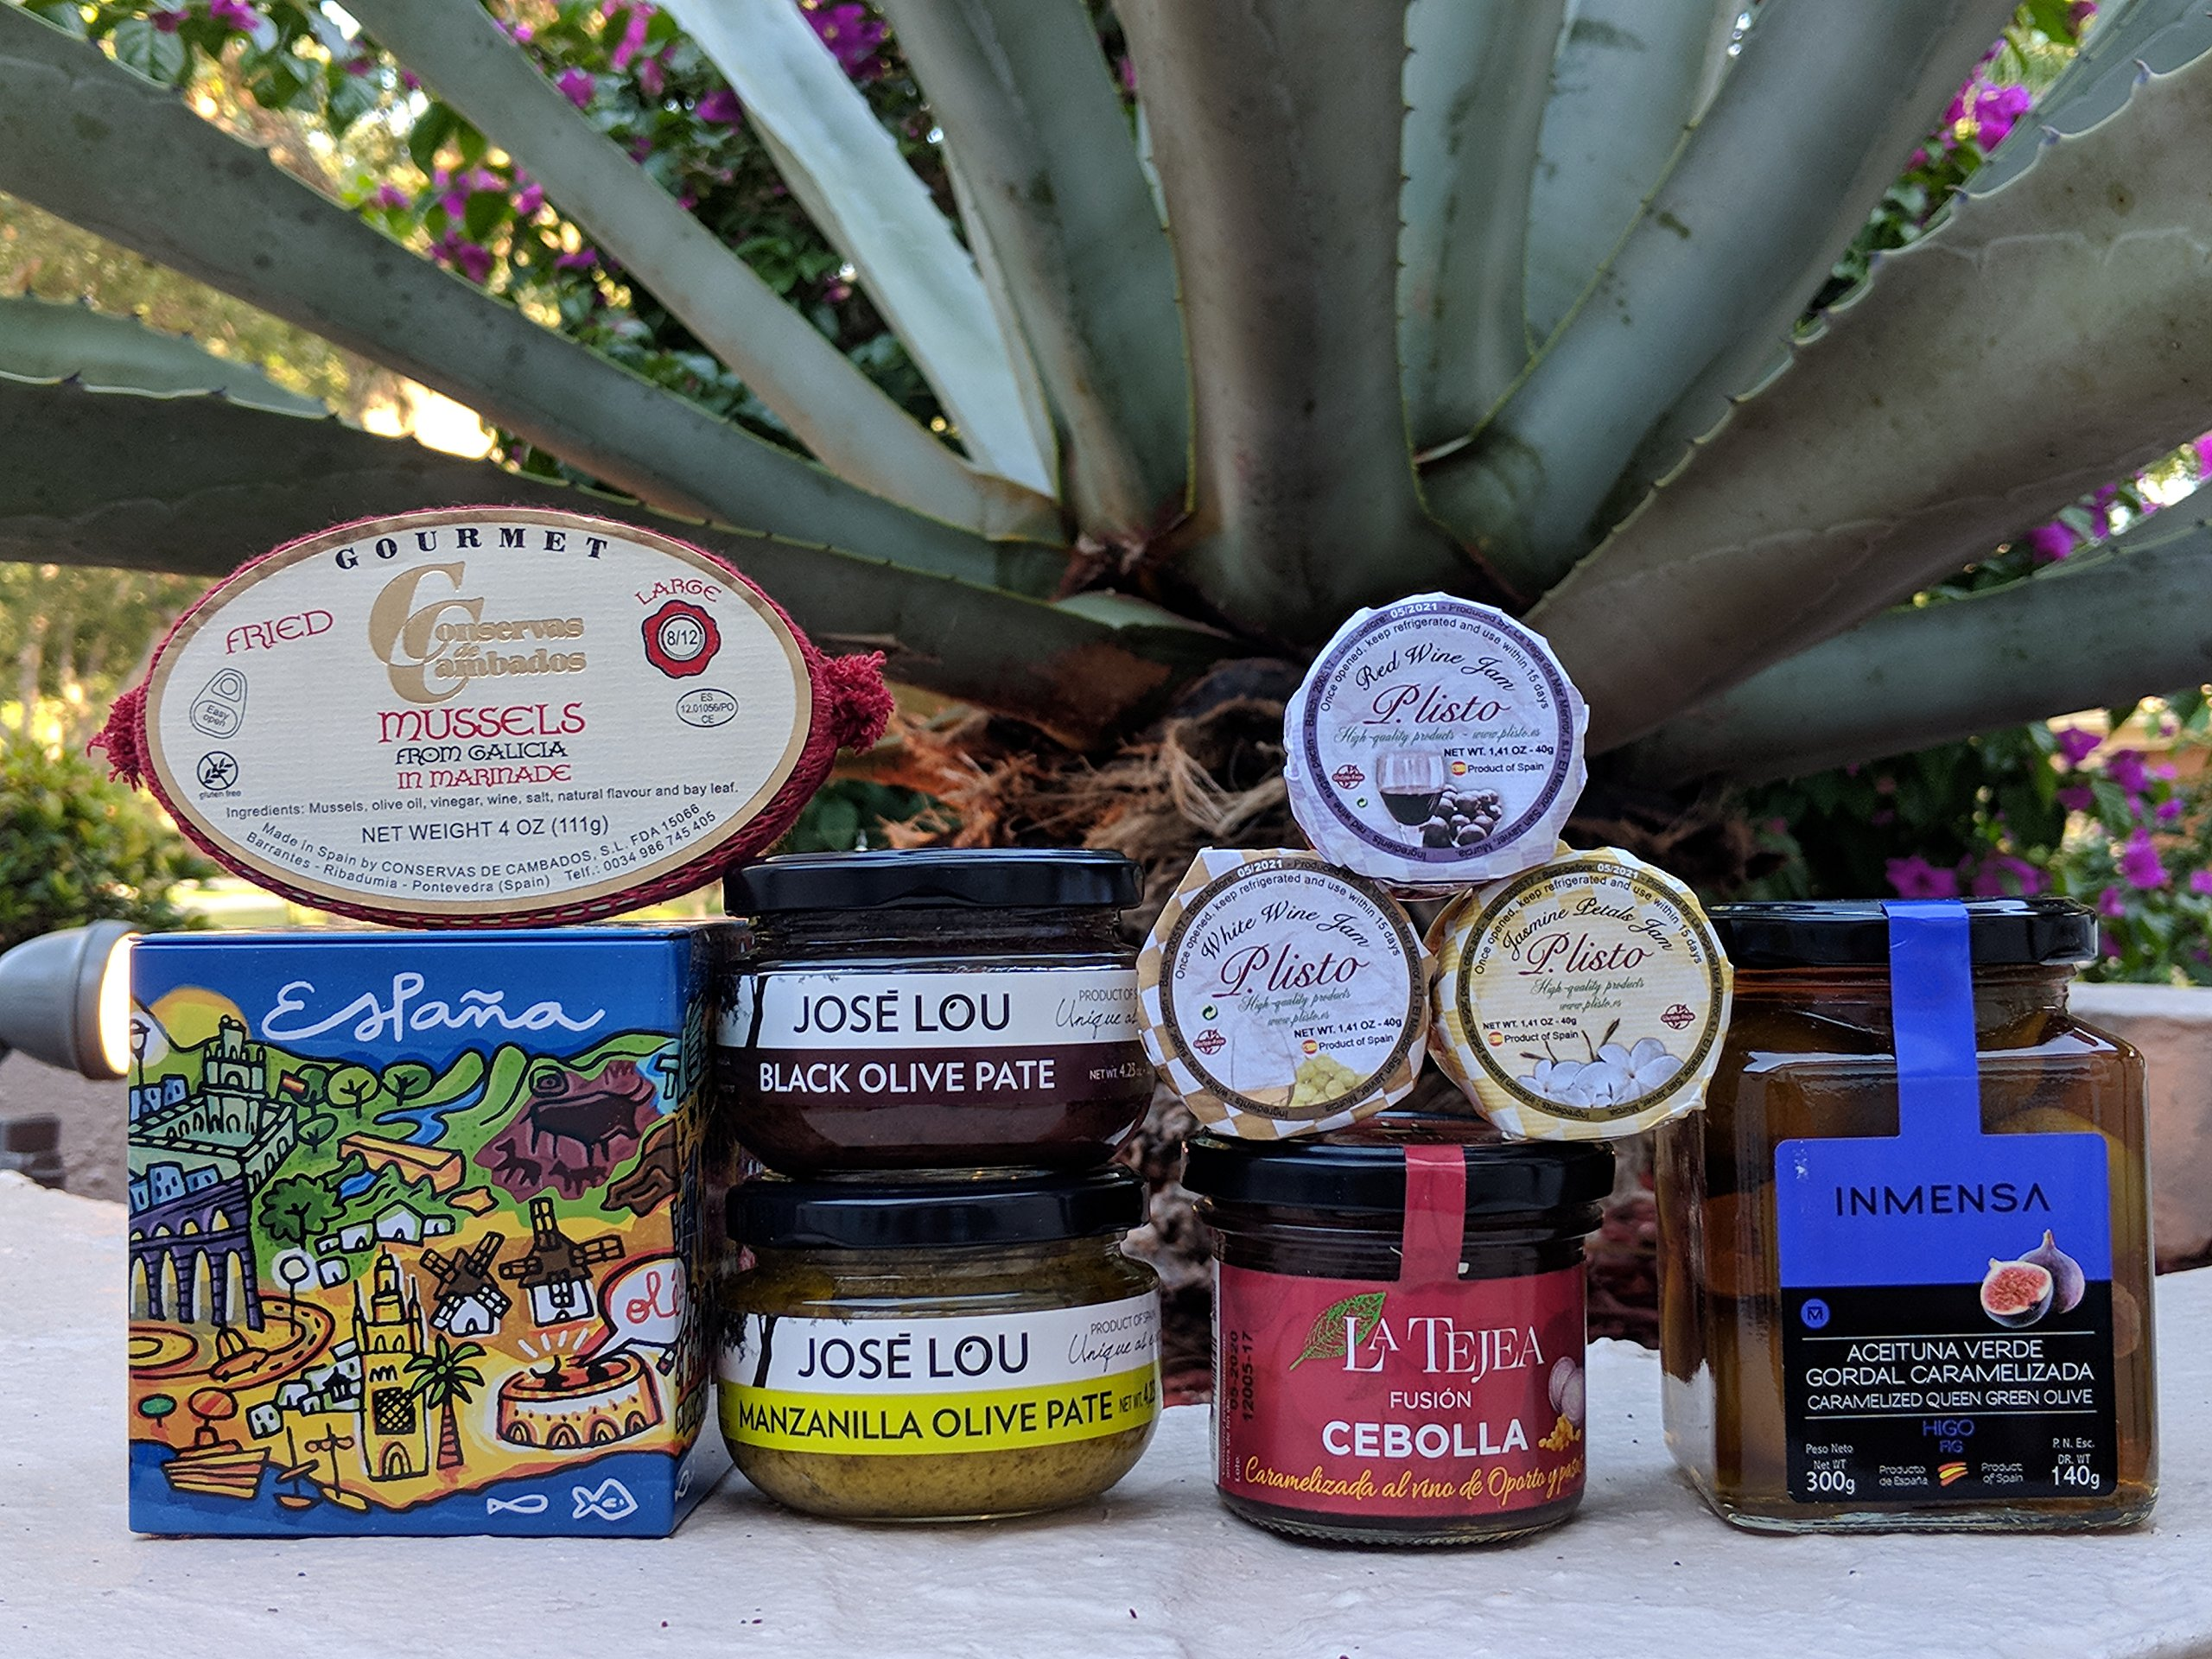 St Miguel Market Food Gift Basket - Chef Ole - ENJOY LIFE, OPEN IT AND HAVE FUN PERFECT FOR WINE LOVERS. ARTISAN JAMS, OLIVE PATES, CARAMELIZED ONIONS WITH PORT & RAISINS, OLIVE FILLED W/FIGS, MUSSELS